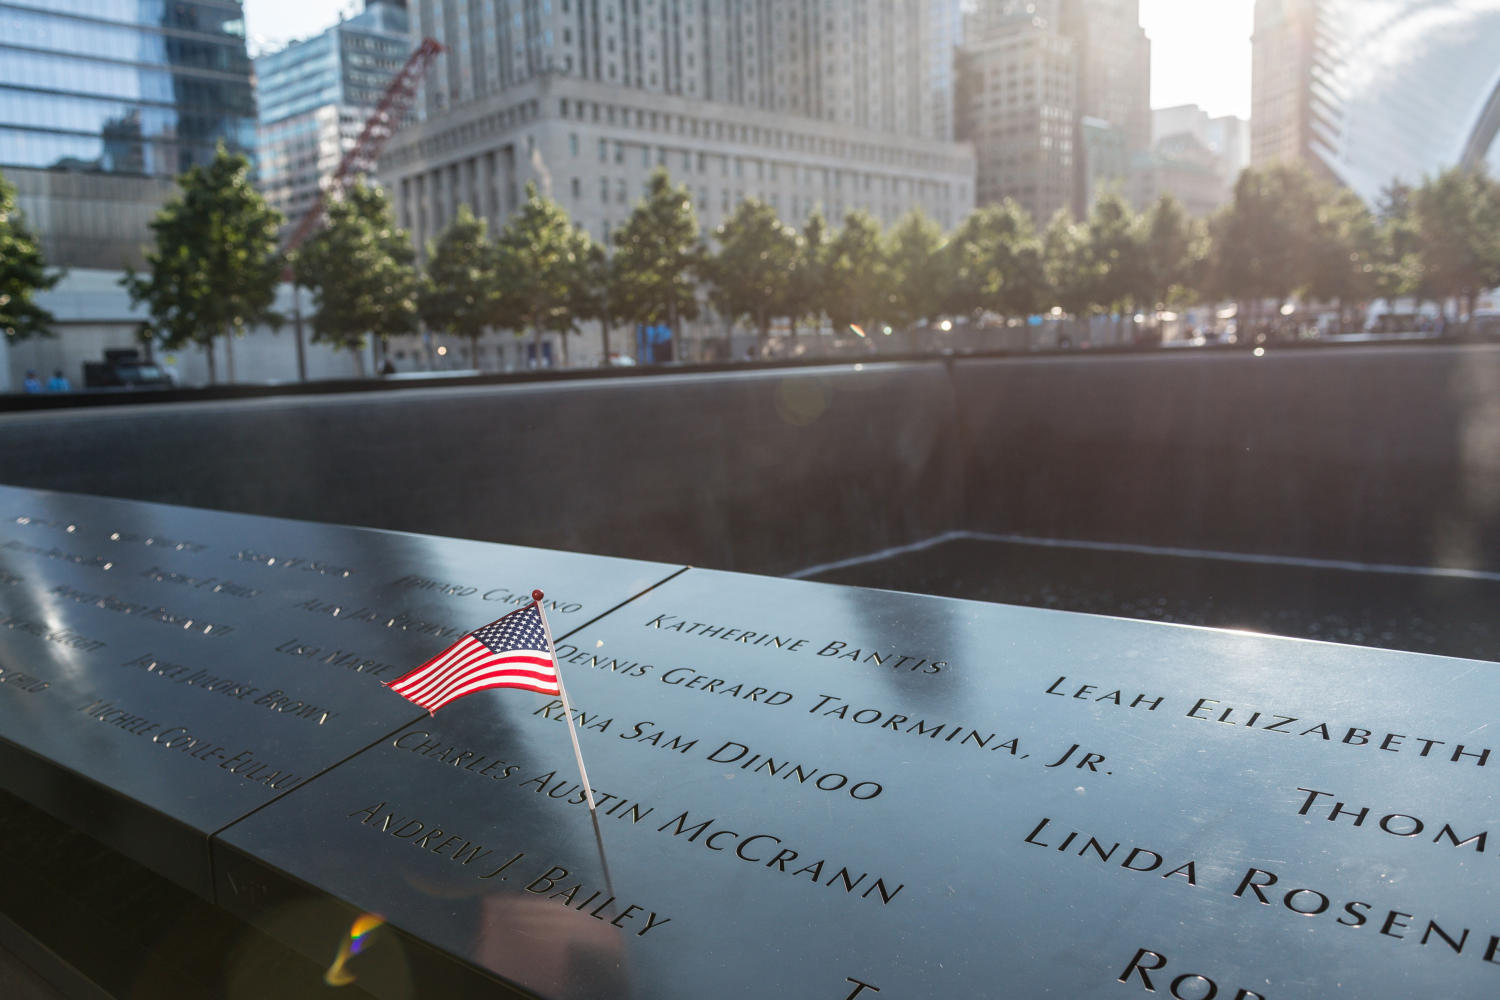 The name of a victim of the 9/11 attacks is seen adorned an American flag on the perimeter of a reflecting pool at a ceremony commemoratoing the 16th anniversary of the September 11th terrorist attacks at the World Trade Center site in New York, New York, NY, USA on September 11, 2017. (Albin Lohr-Jones/Sipa USA/TNS)